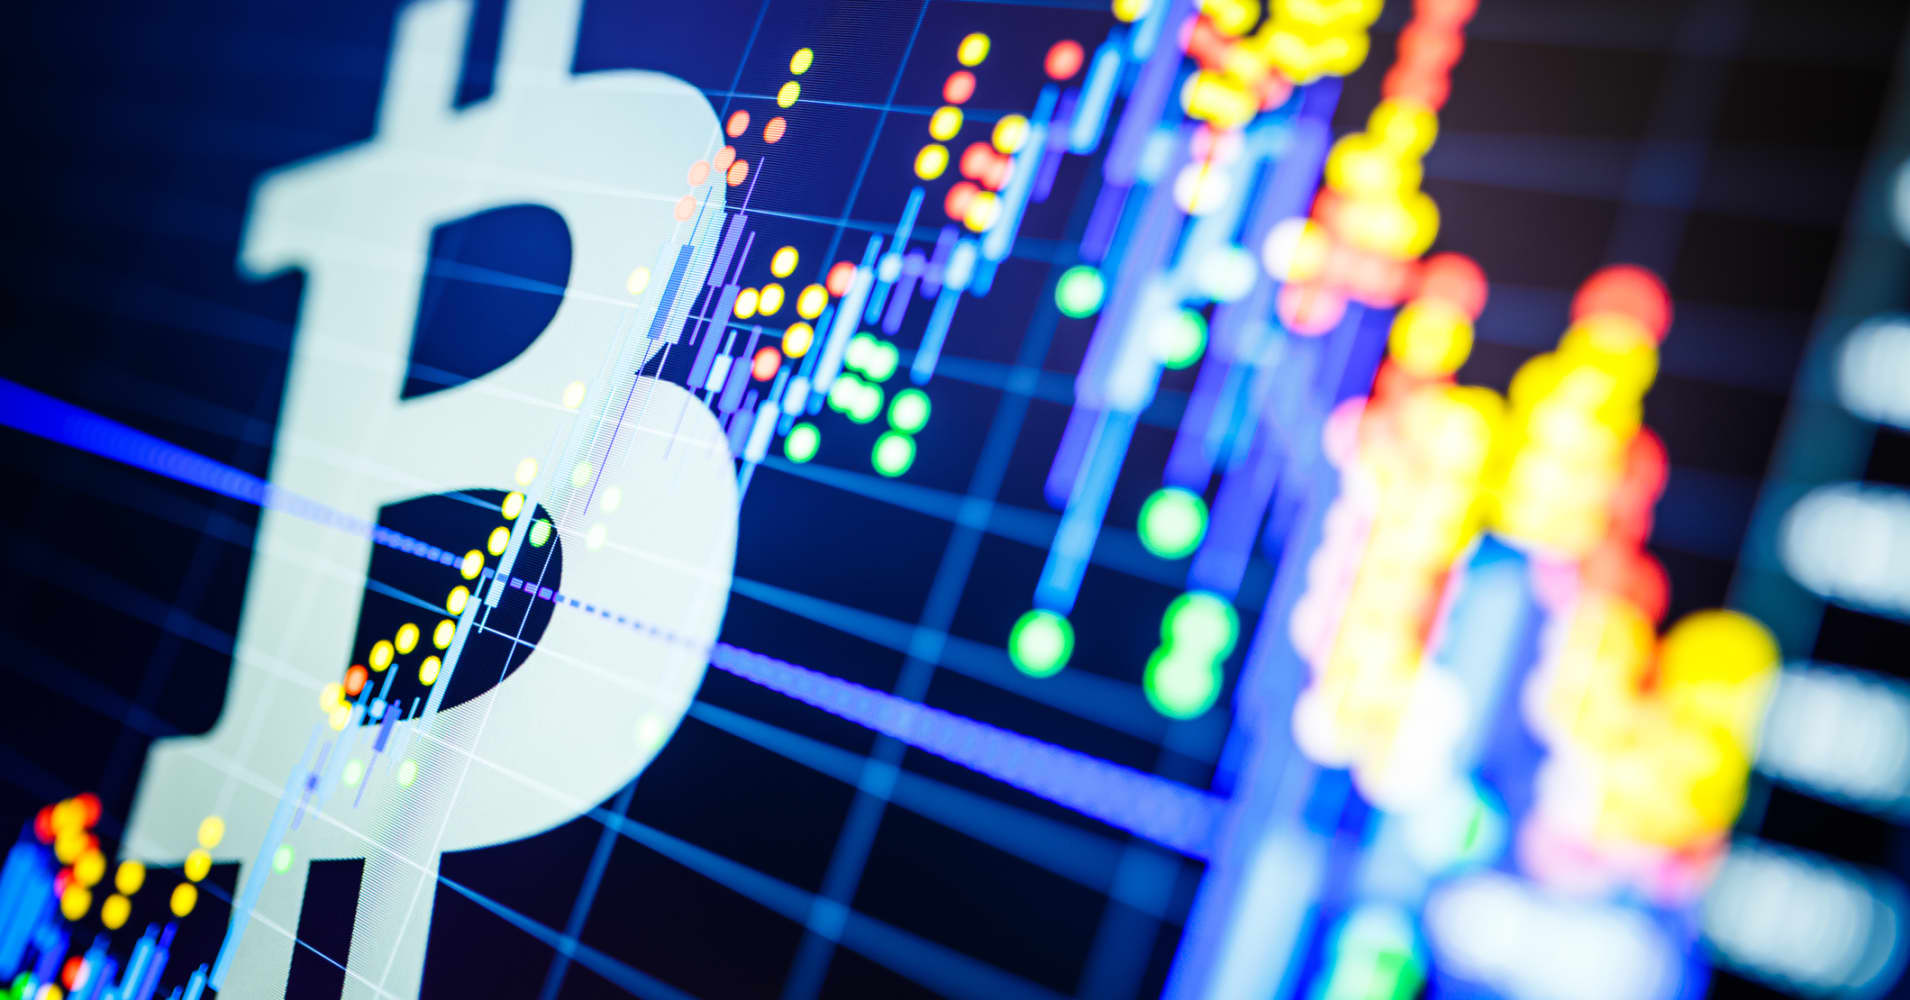 Ten experts debate bitcoin's recent declines and the future of cryptocurrency